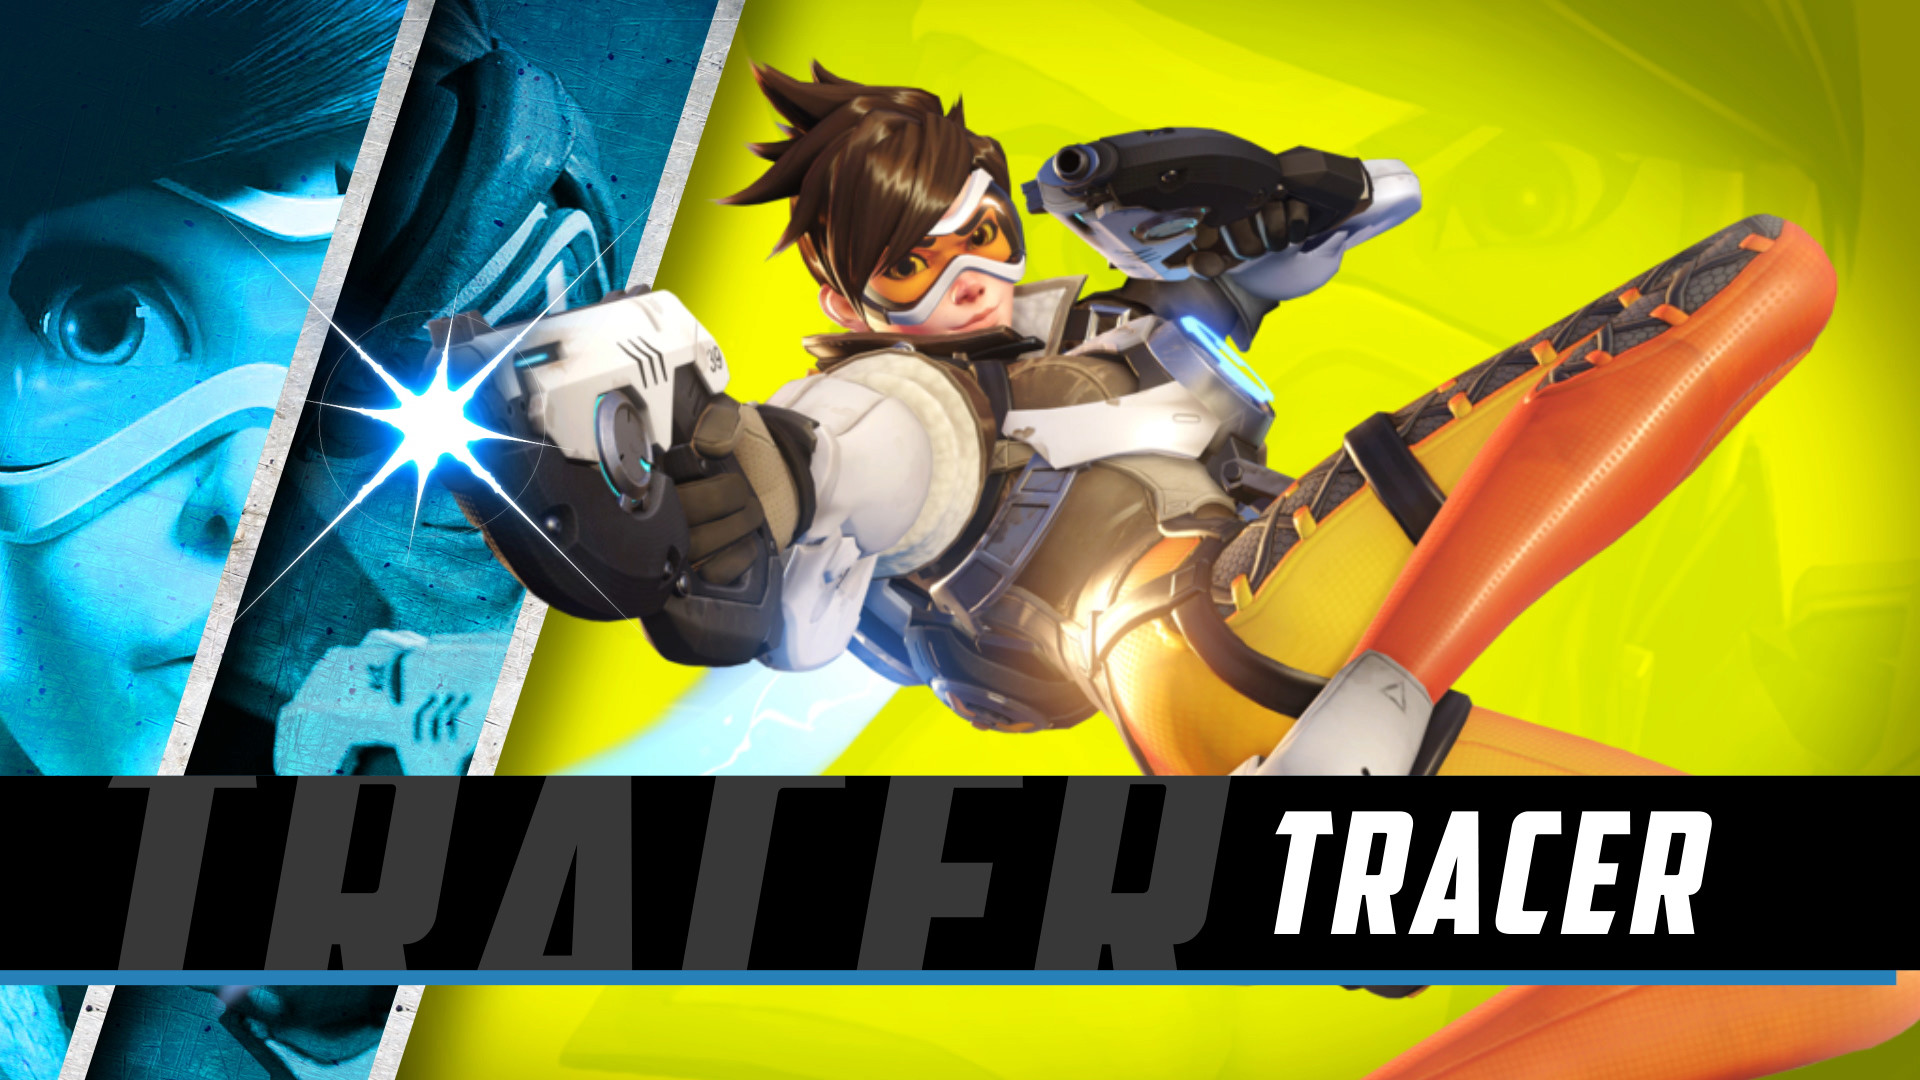 03_CHARACTER TRANS TRACER_00000.jpg